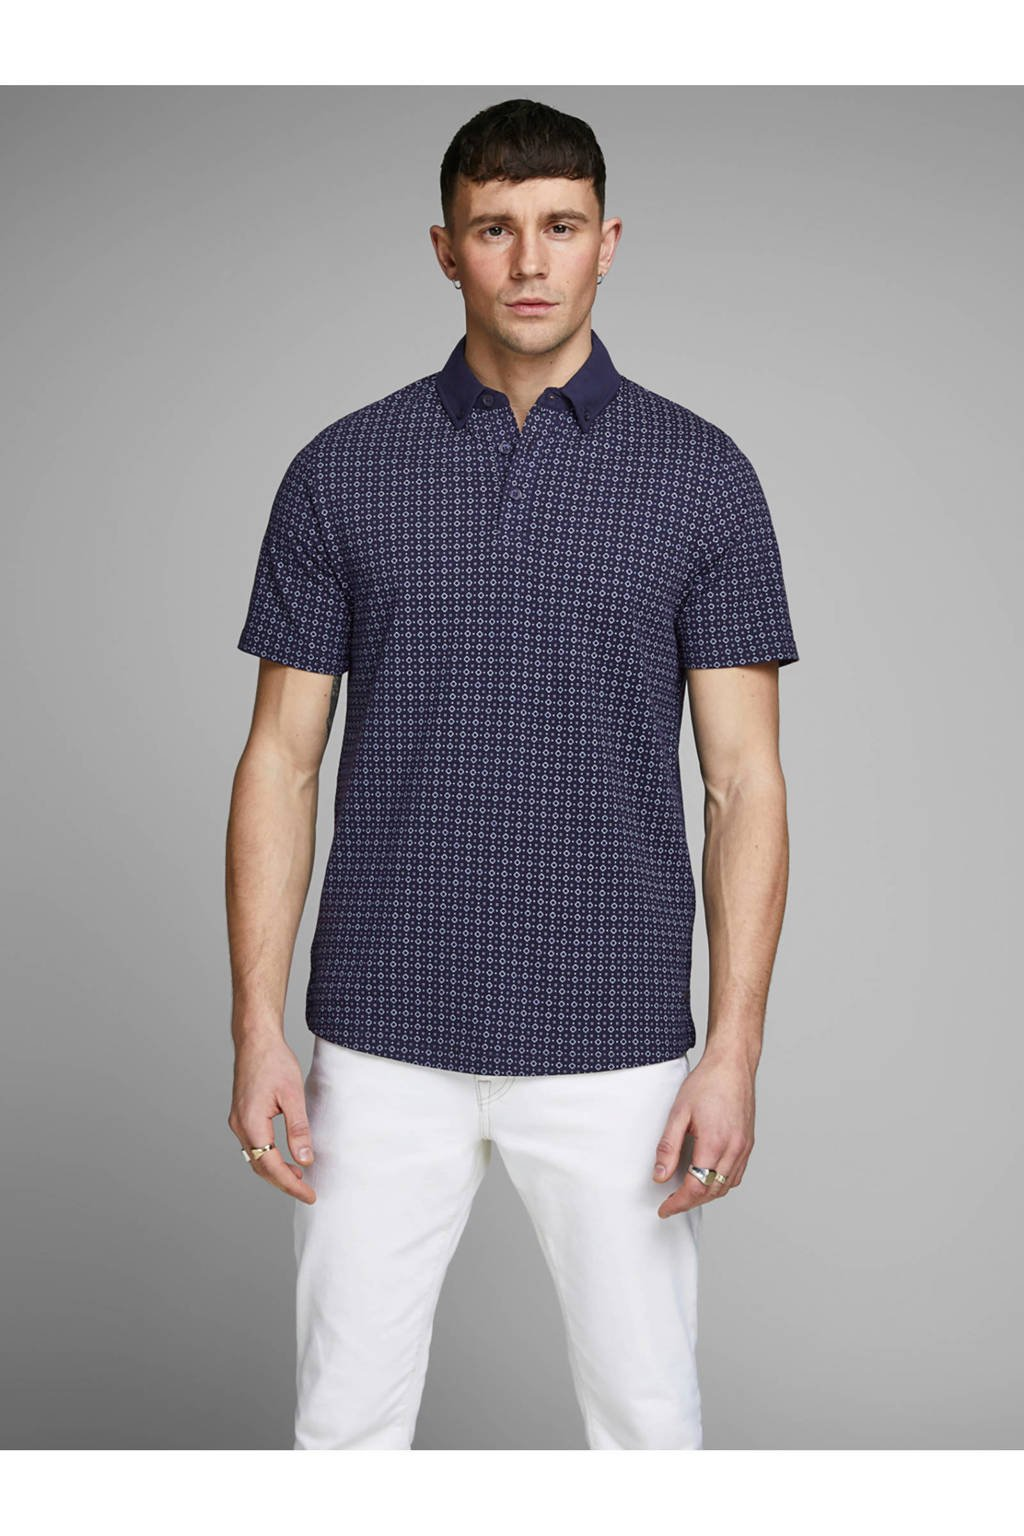 JACK & JONES PREMIUM slim fit polo met print, Marine